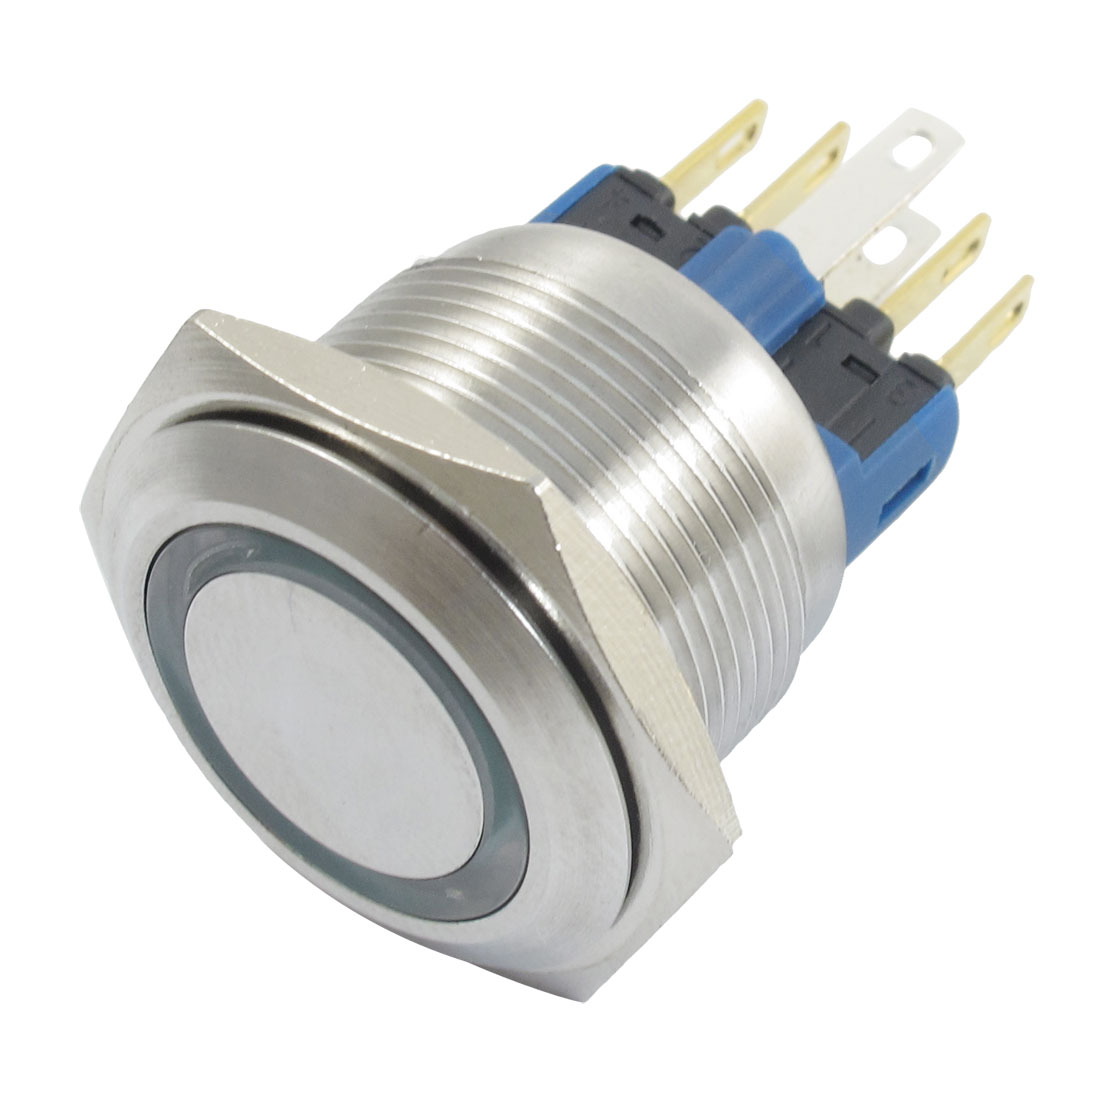 12V Green Lamp Momentary 20mm Thread Stainless Push Button Switch